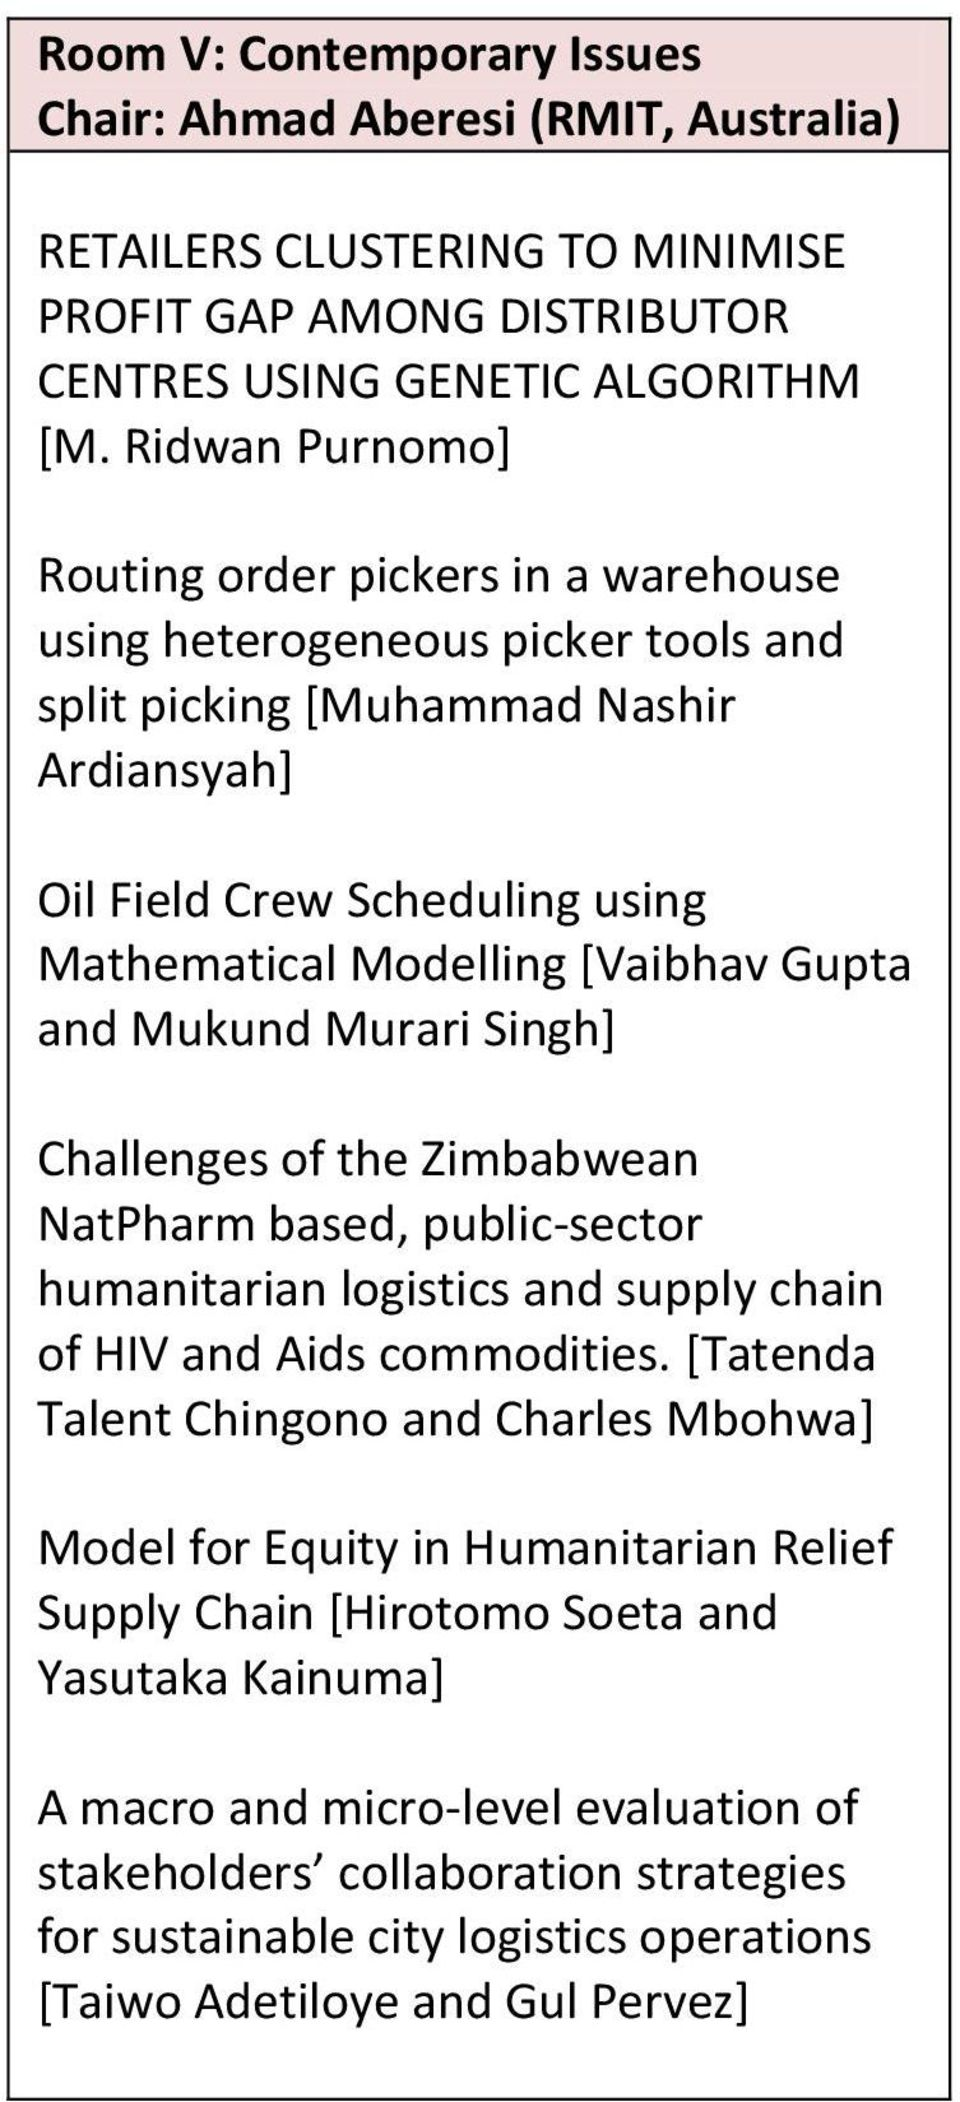 Gupta and Mukund Murari Singh] Challenges of the Zimbabwean NatPharm based, public-sector humanitarian logistics and supply chain of HIV and Aids commodities.